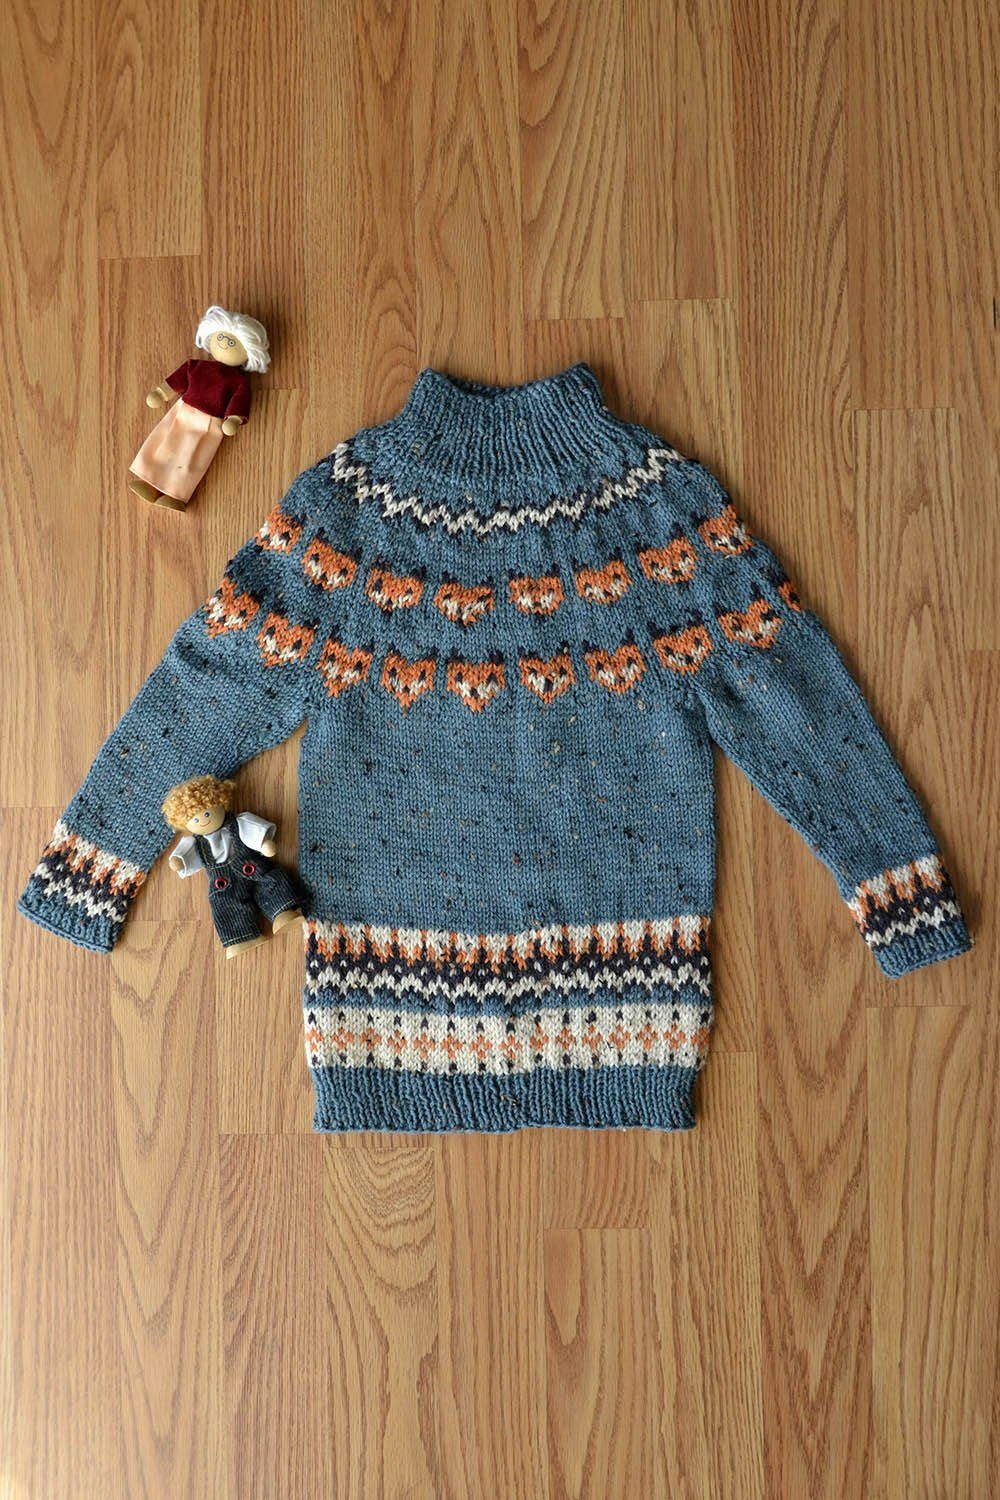 What Does The Sweater Say? Pattern Universal Yarn